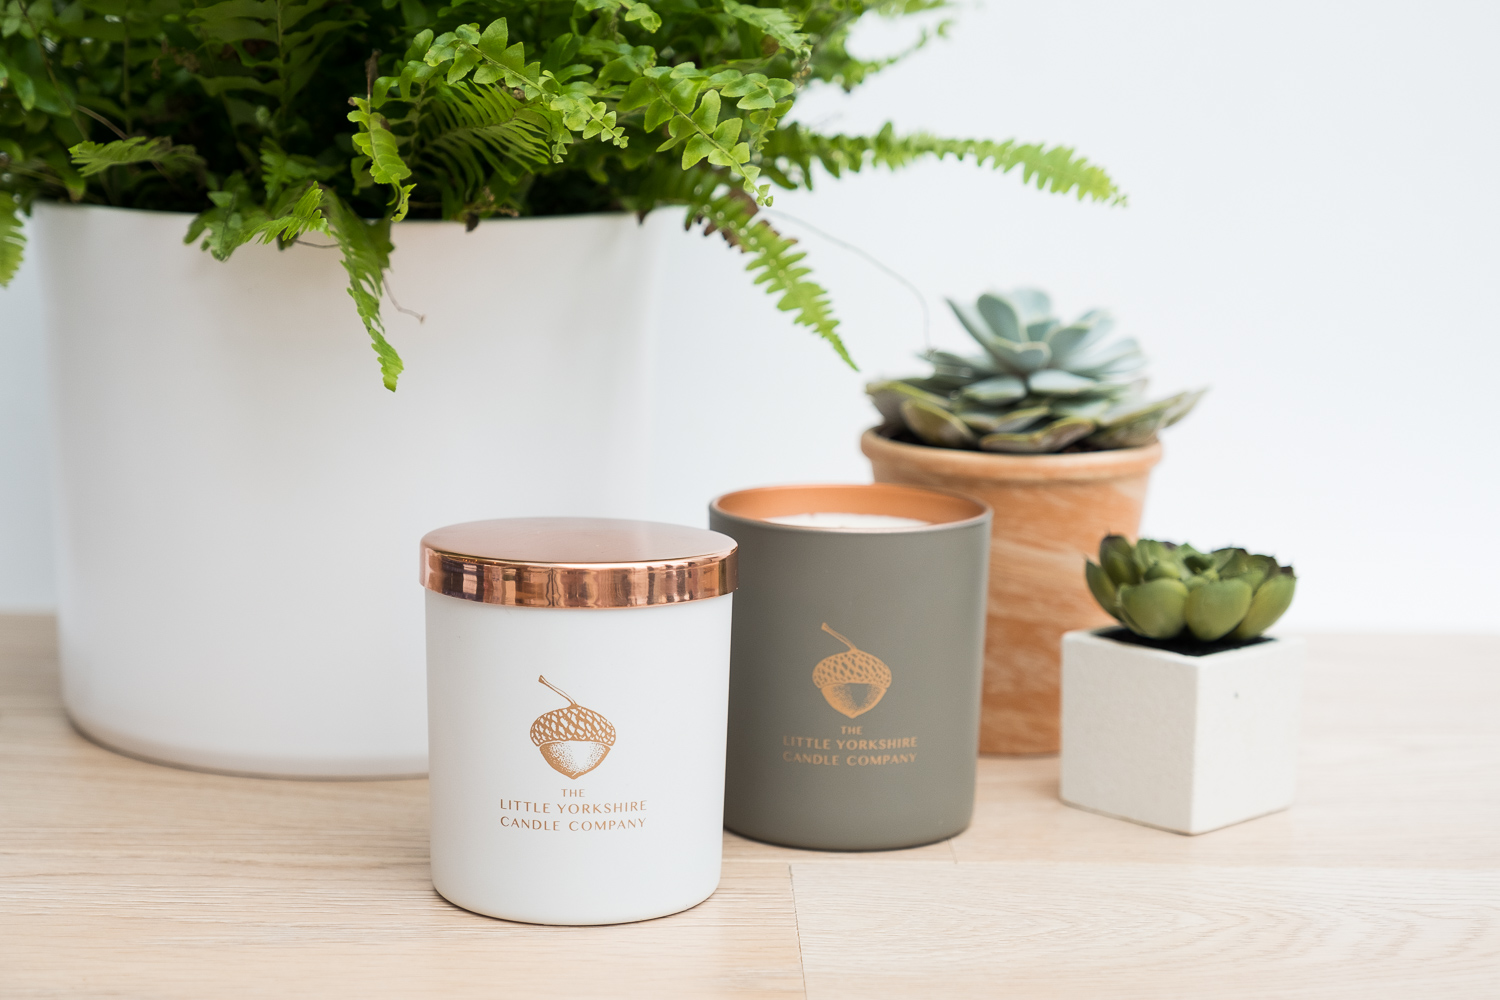 The Little Yorkshire Candle Company